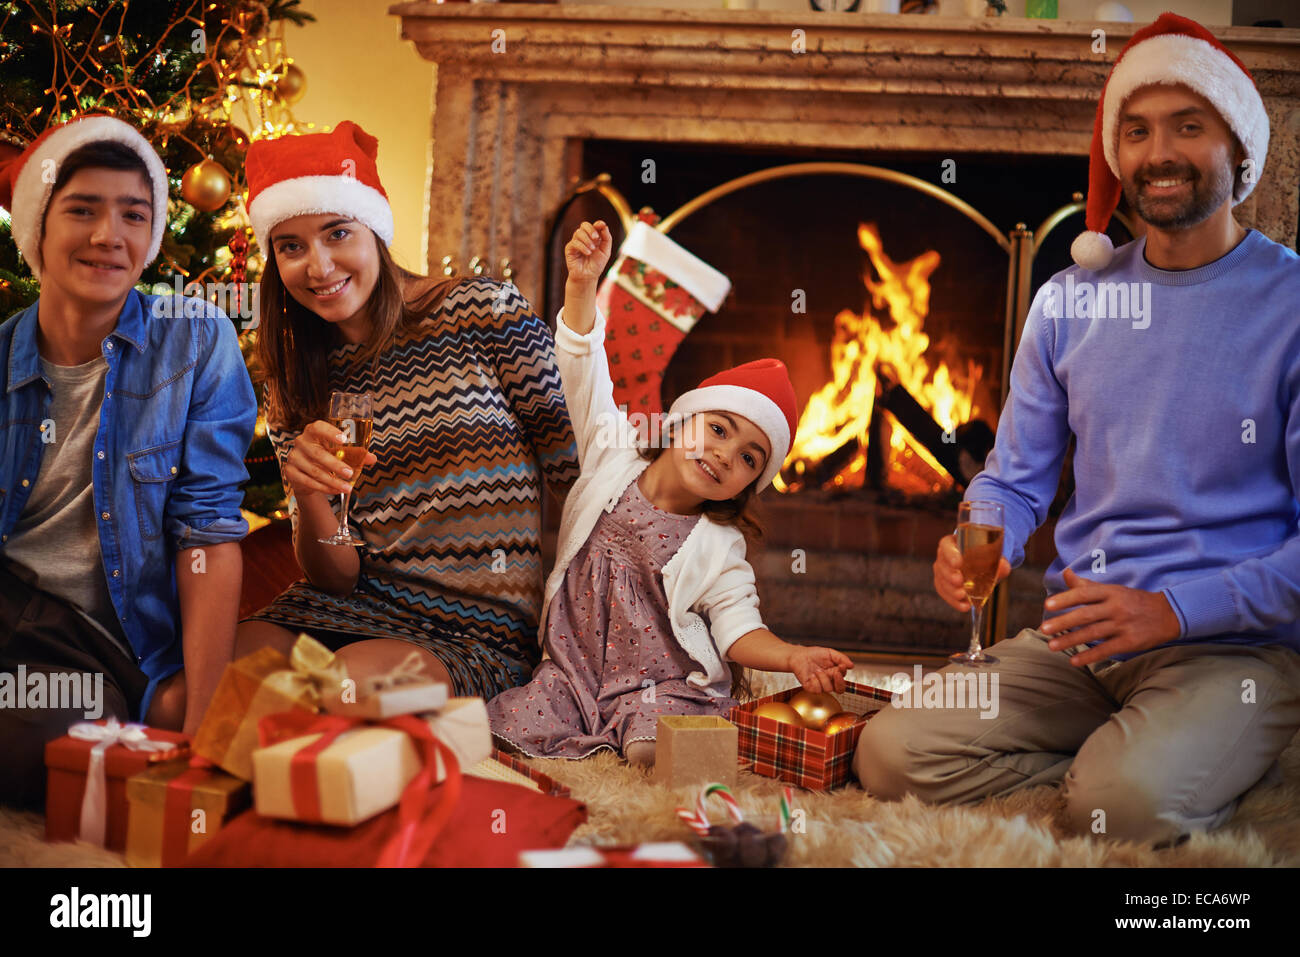 Family of four in Santa caps resting at home on Christmas evening - Stock Image